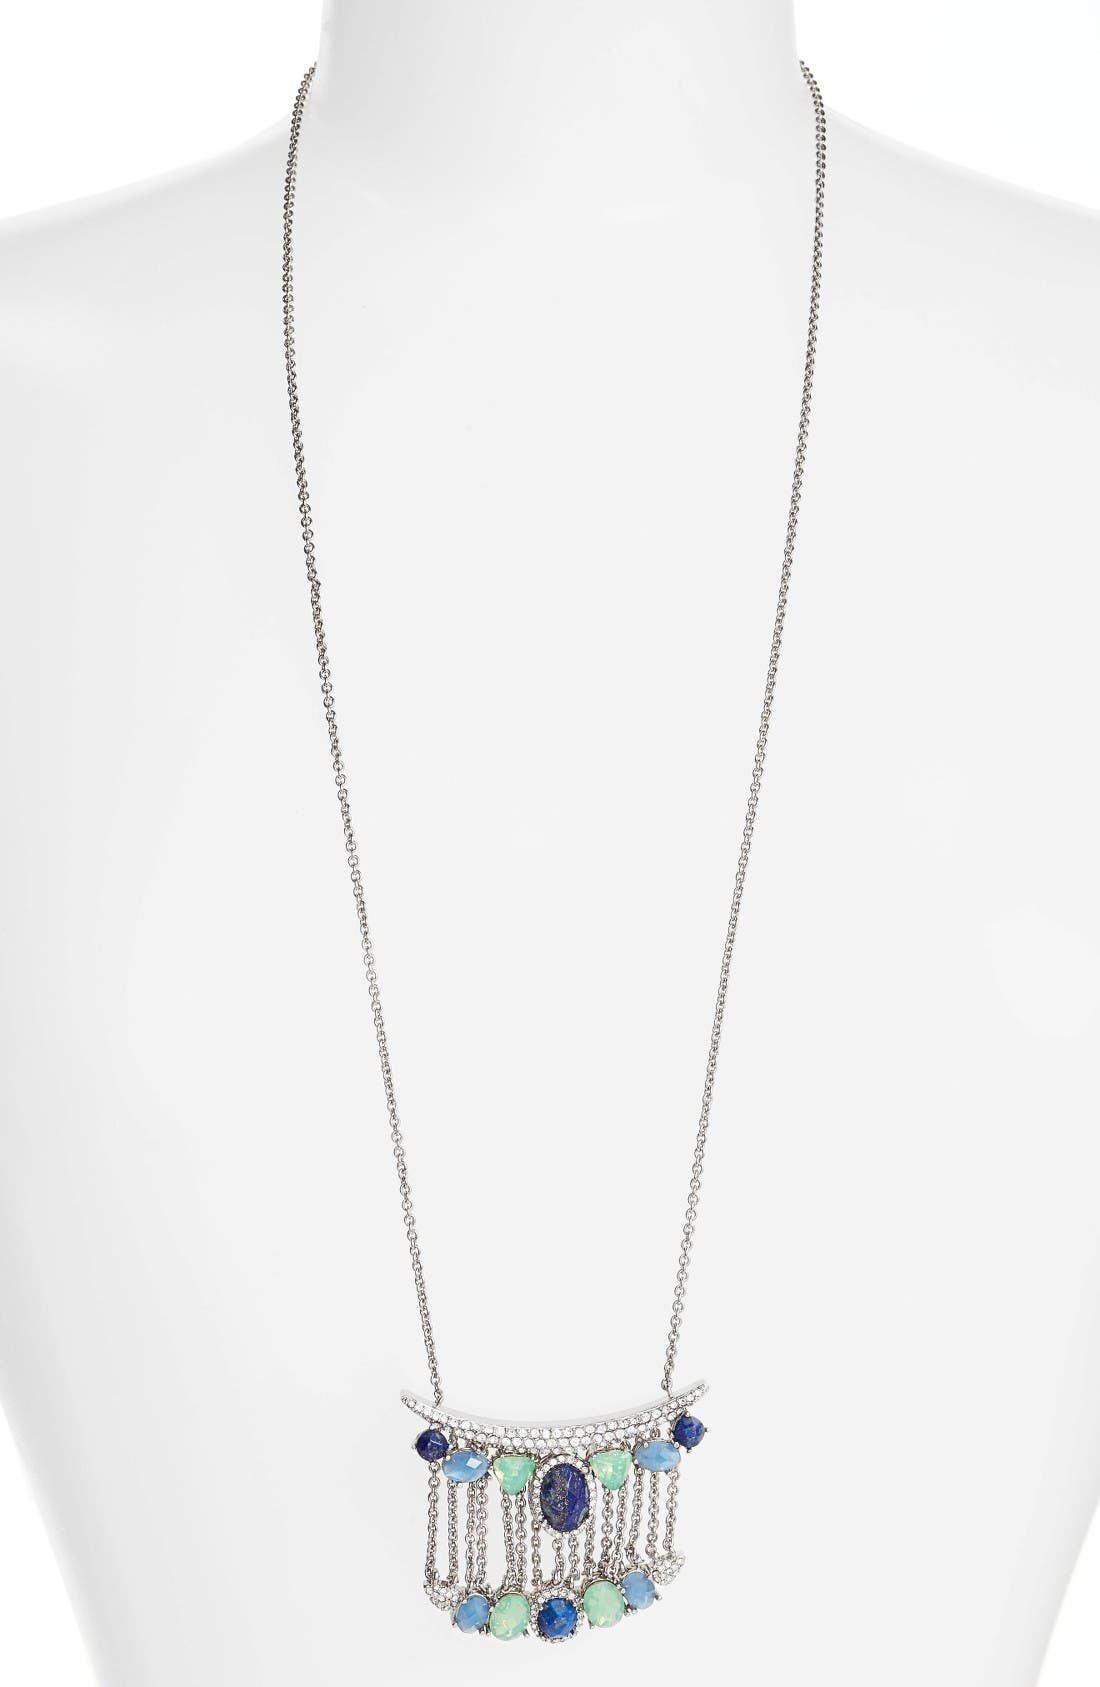 Main Image - Jenny Packham Wanderlust Pendant Necklace